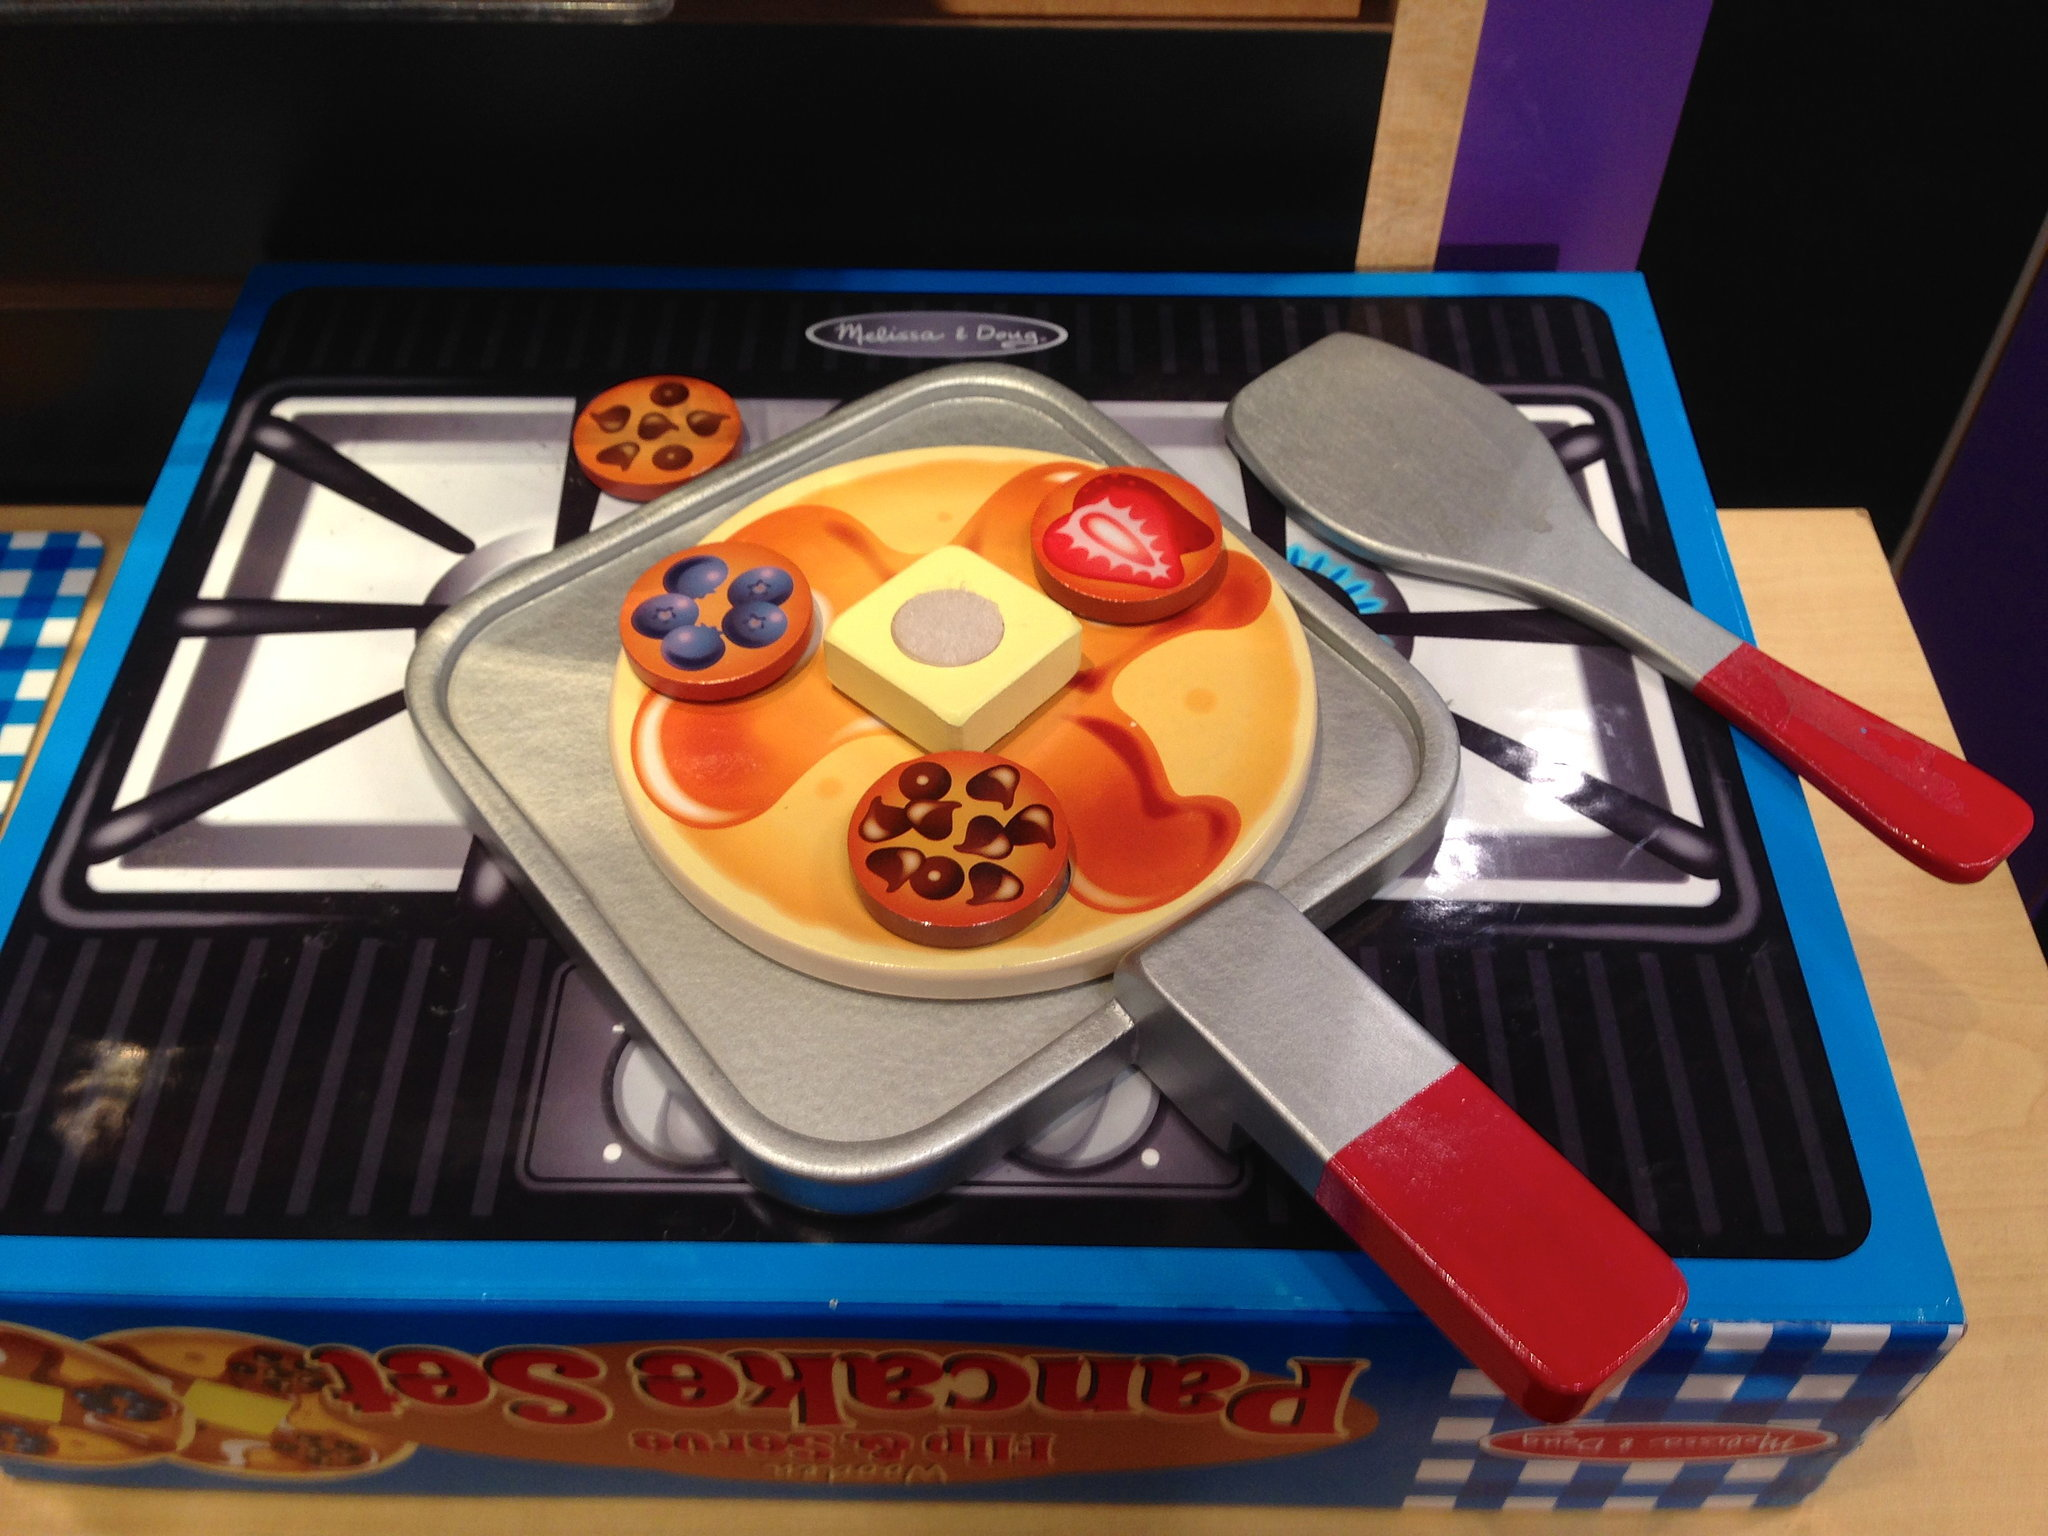 Breakfast's Ready From Melissa & Doug!